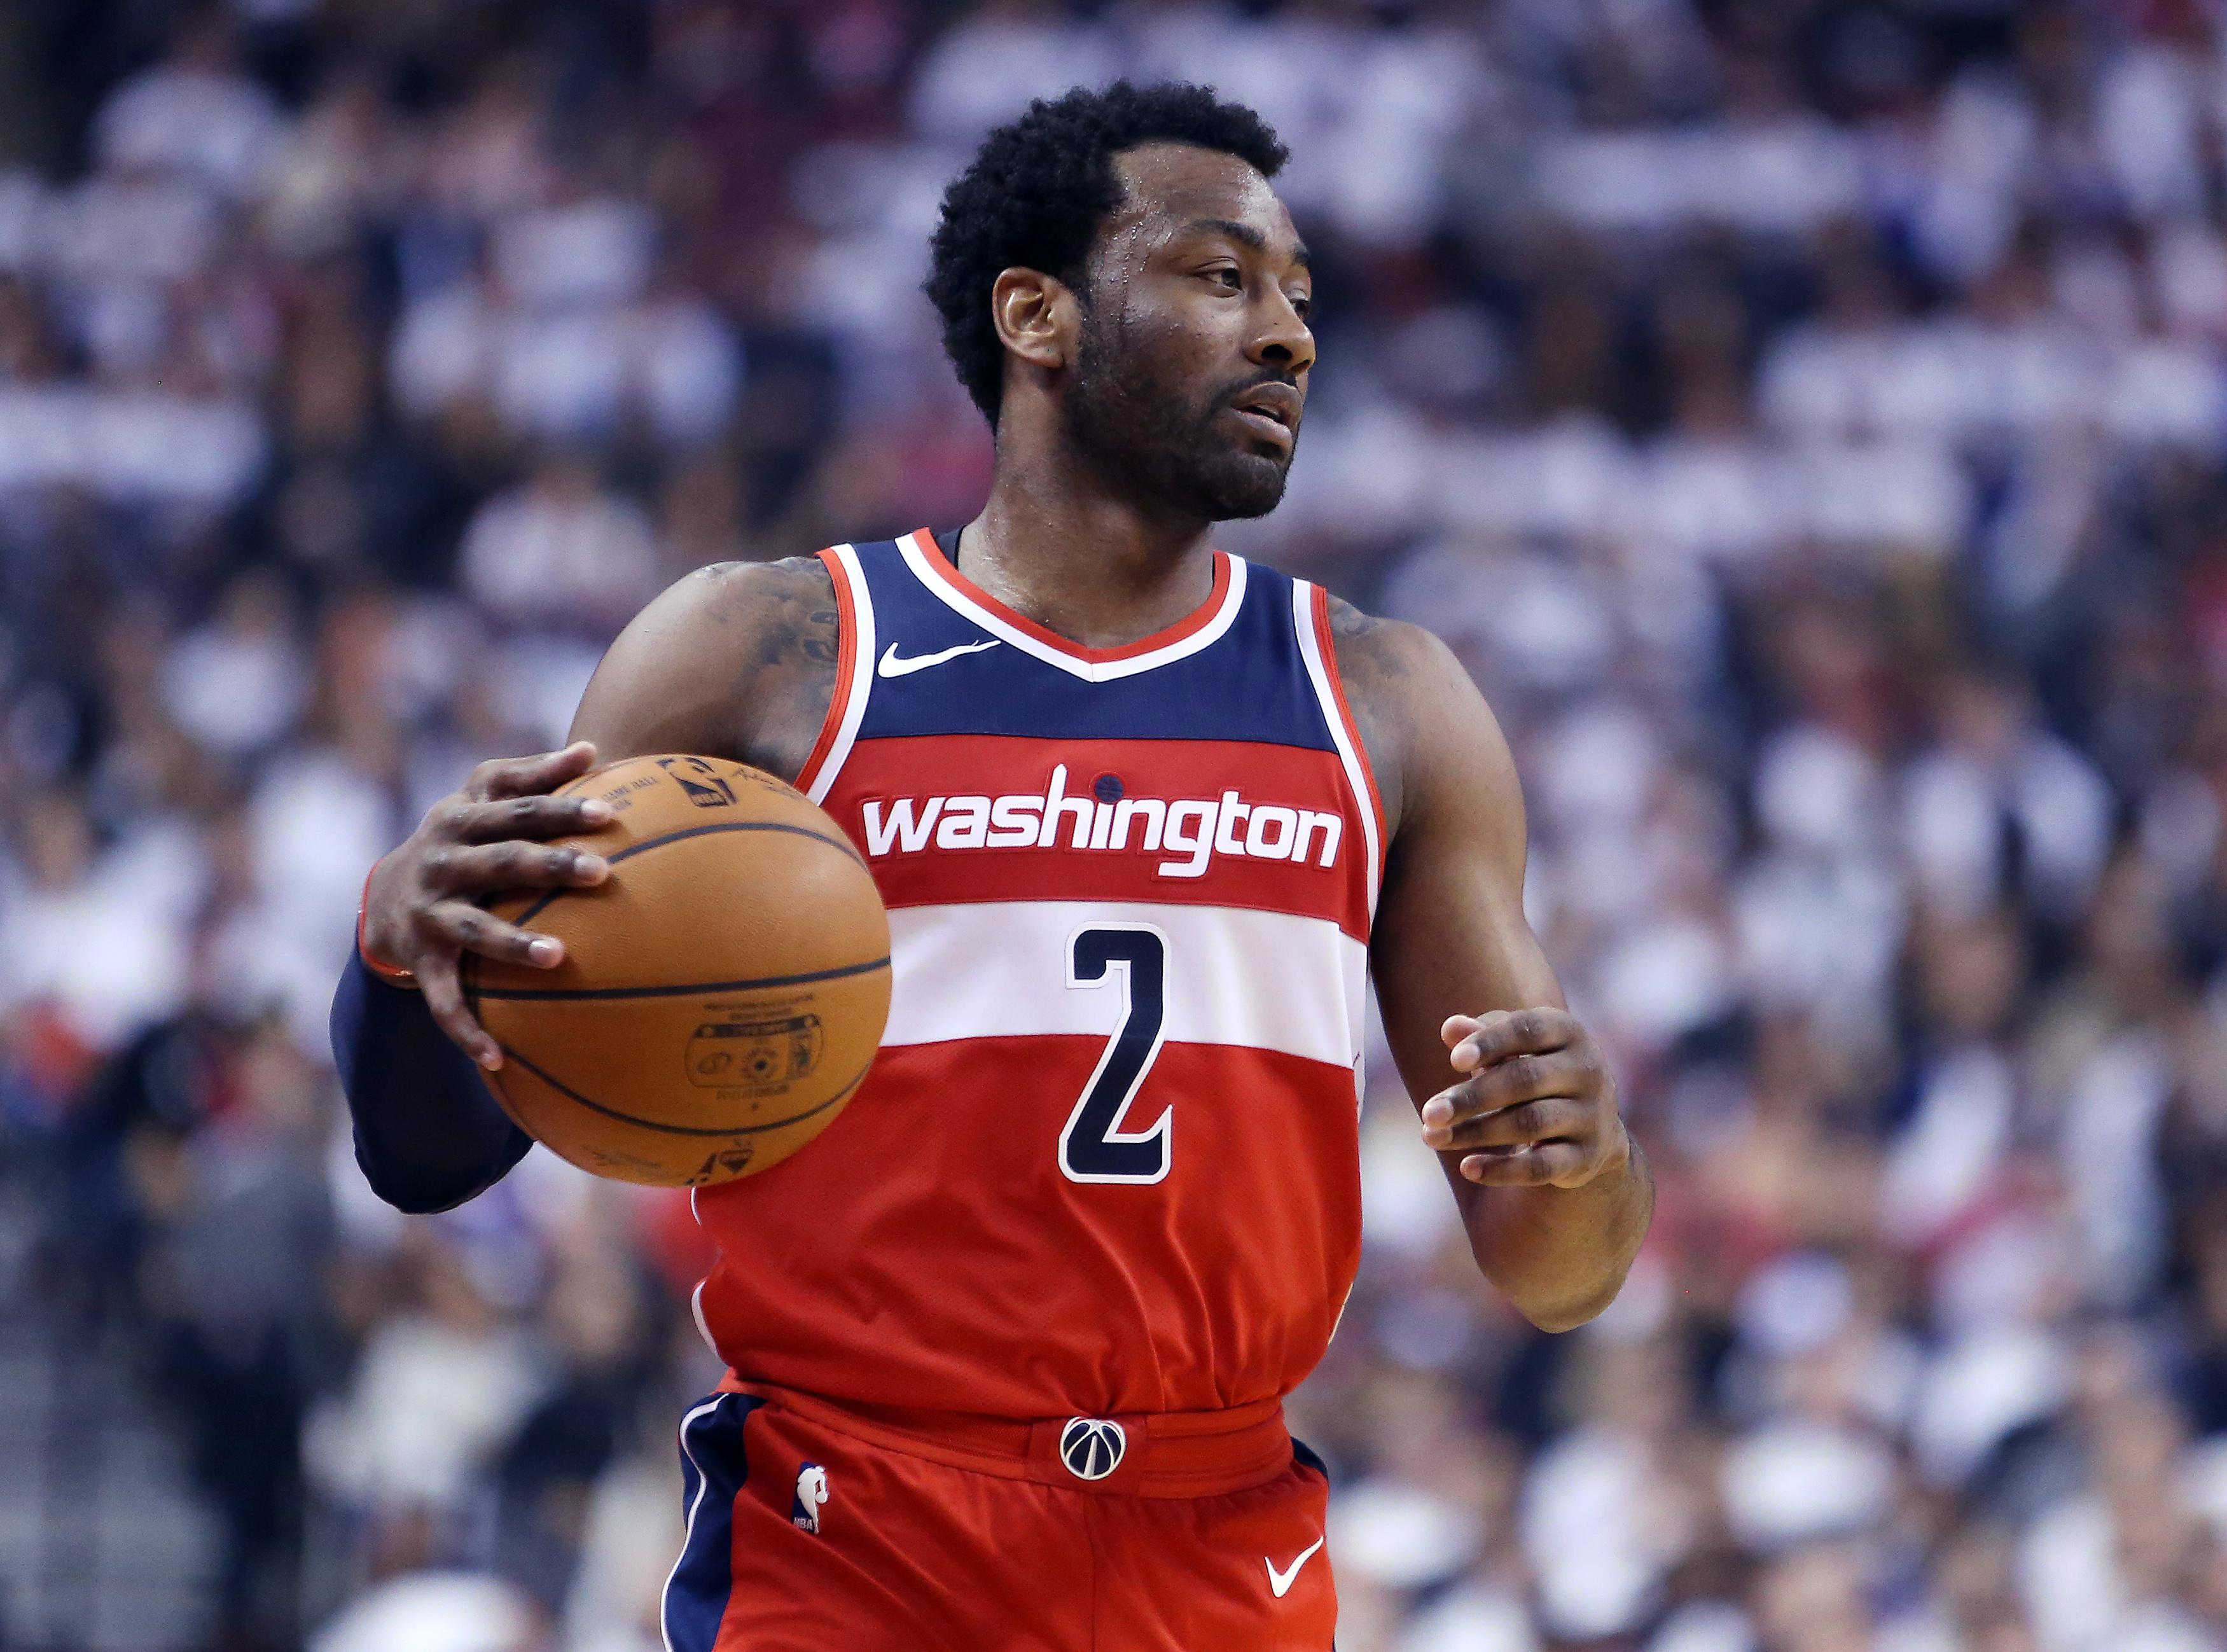 The Washington Wizards and five-time All-Star guard John Wall come to London next January